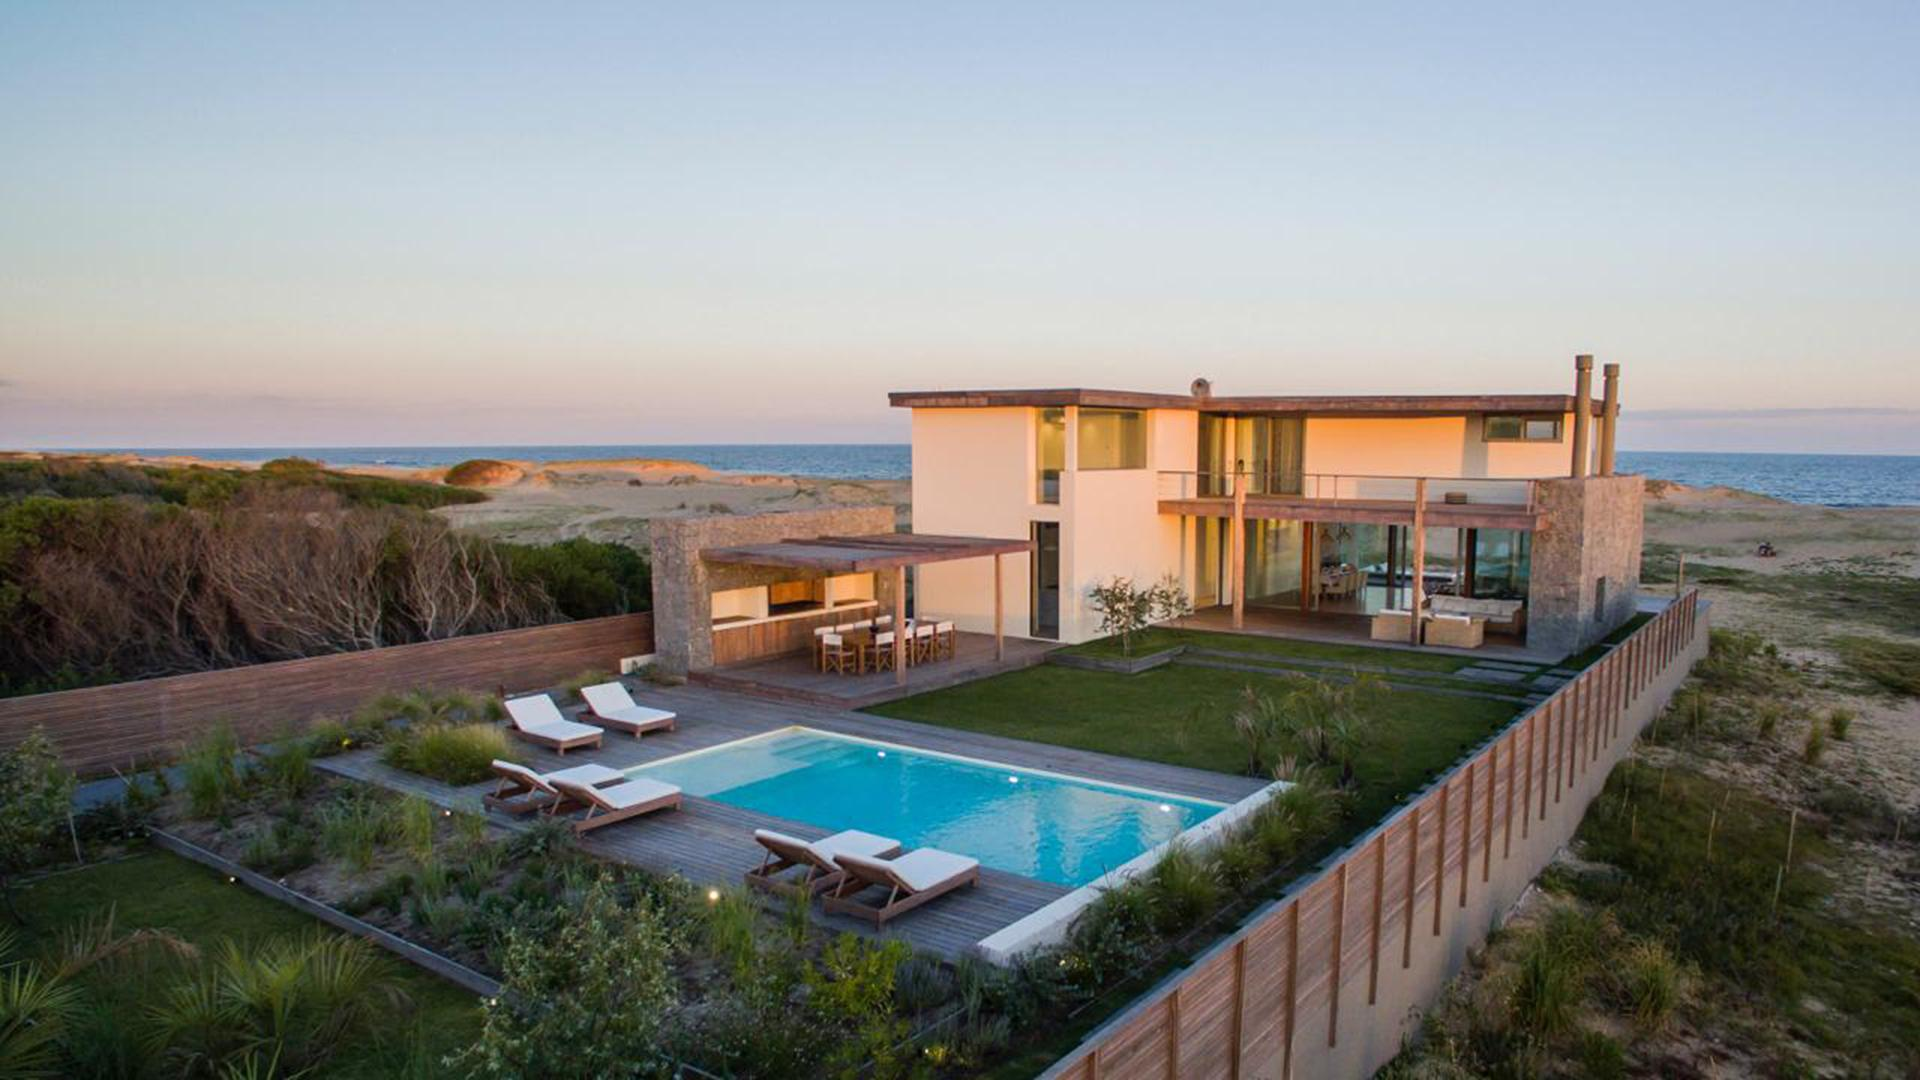 Luxury Beachfront Villa located in Jose Ignacio, Punta del Este, Uruguay, listed by Curiocity Villas.